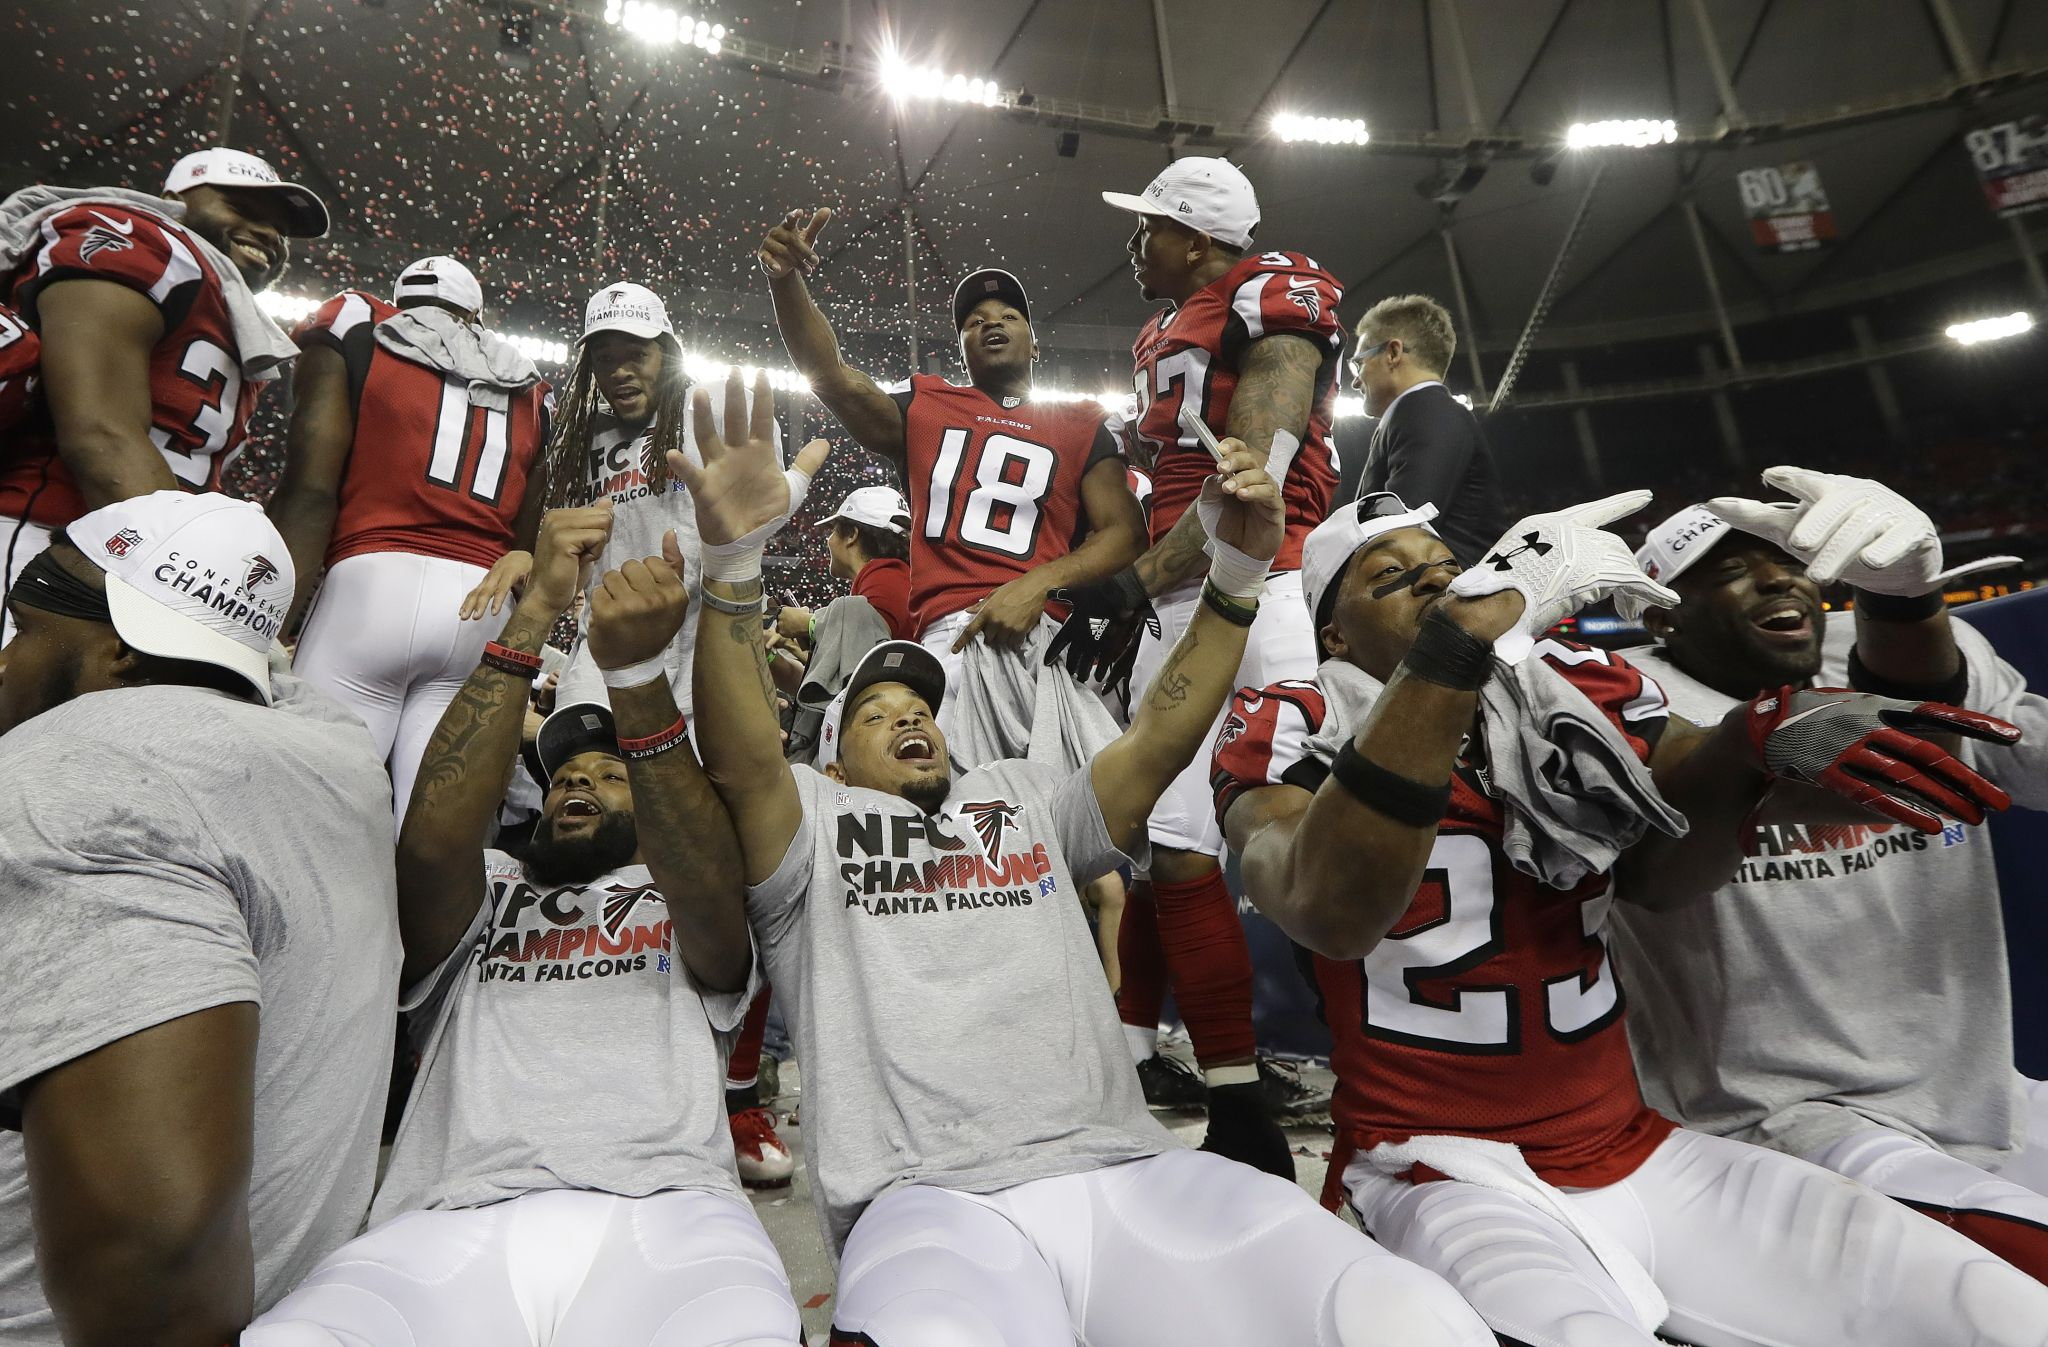 NFC conference title game Falcons 44 Packers 21 Houston Chronicle